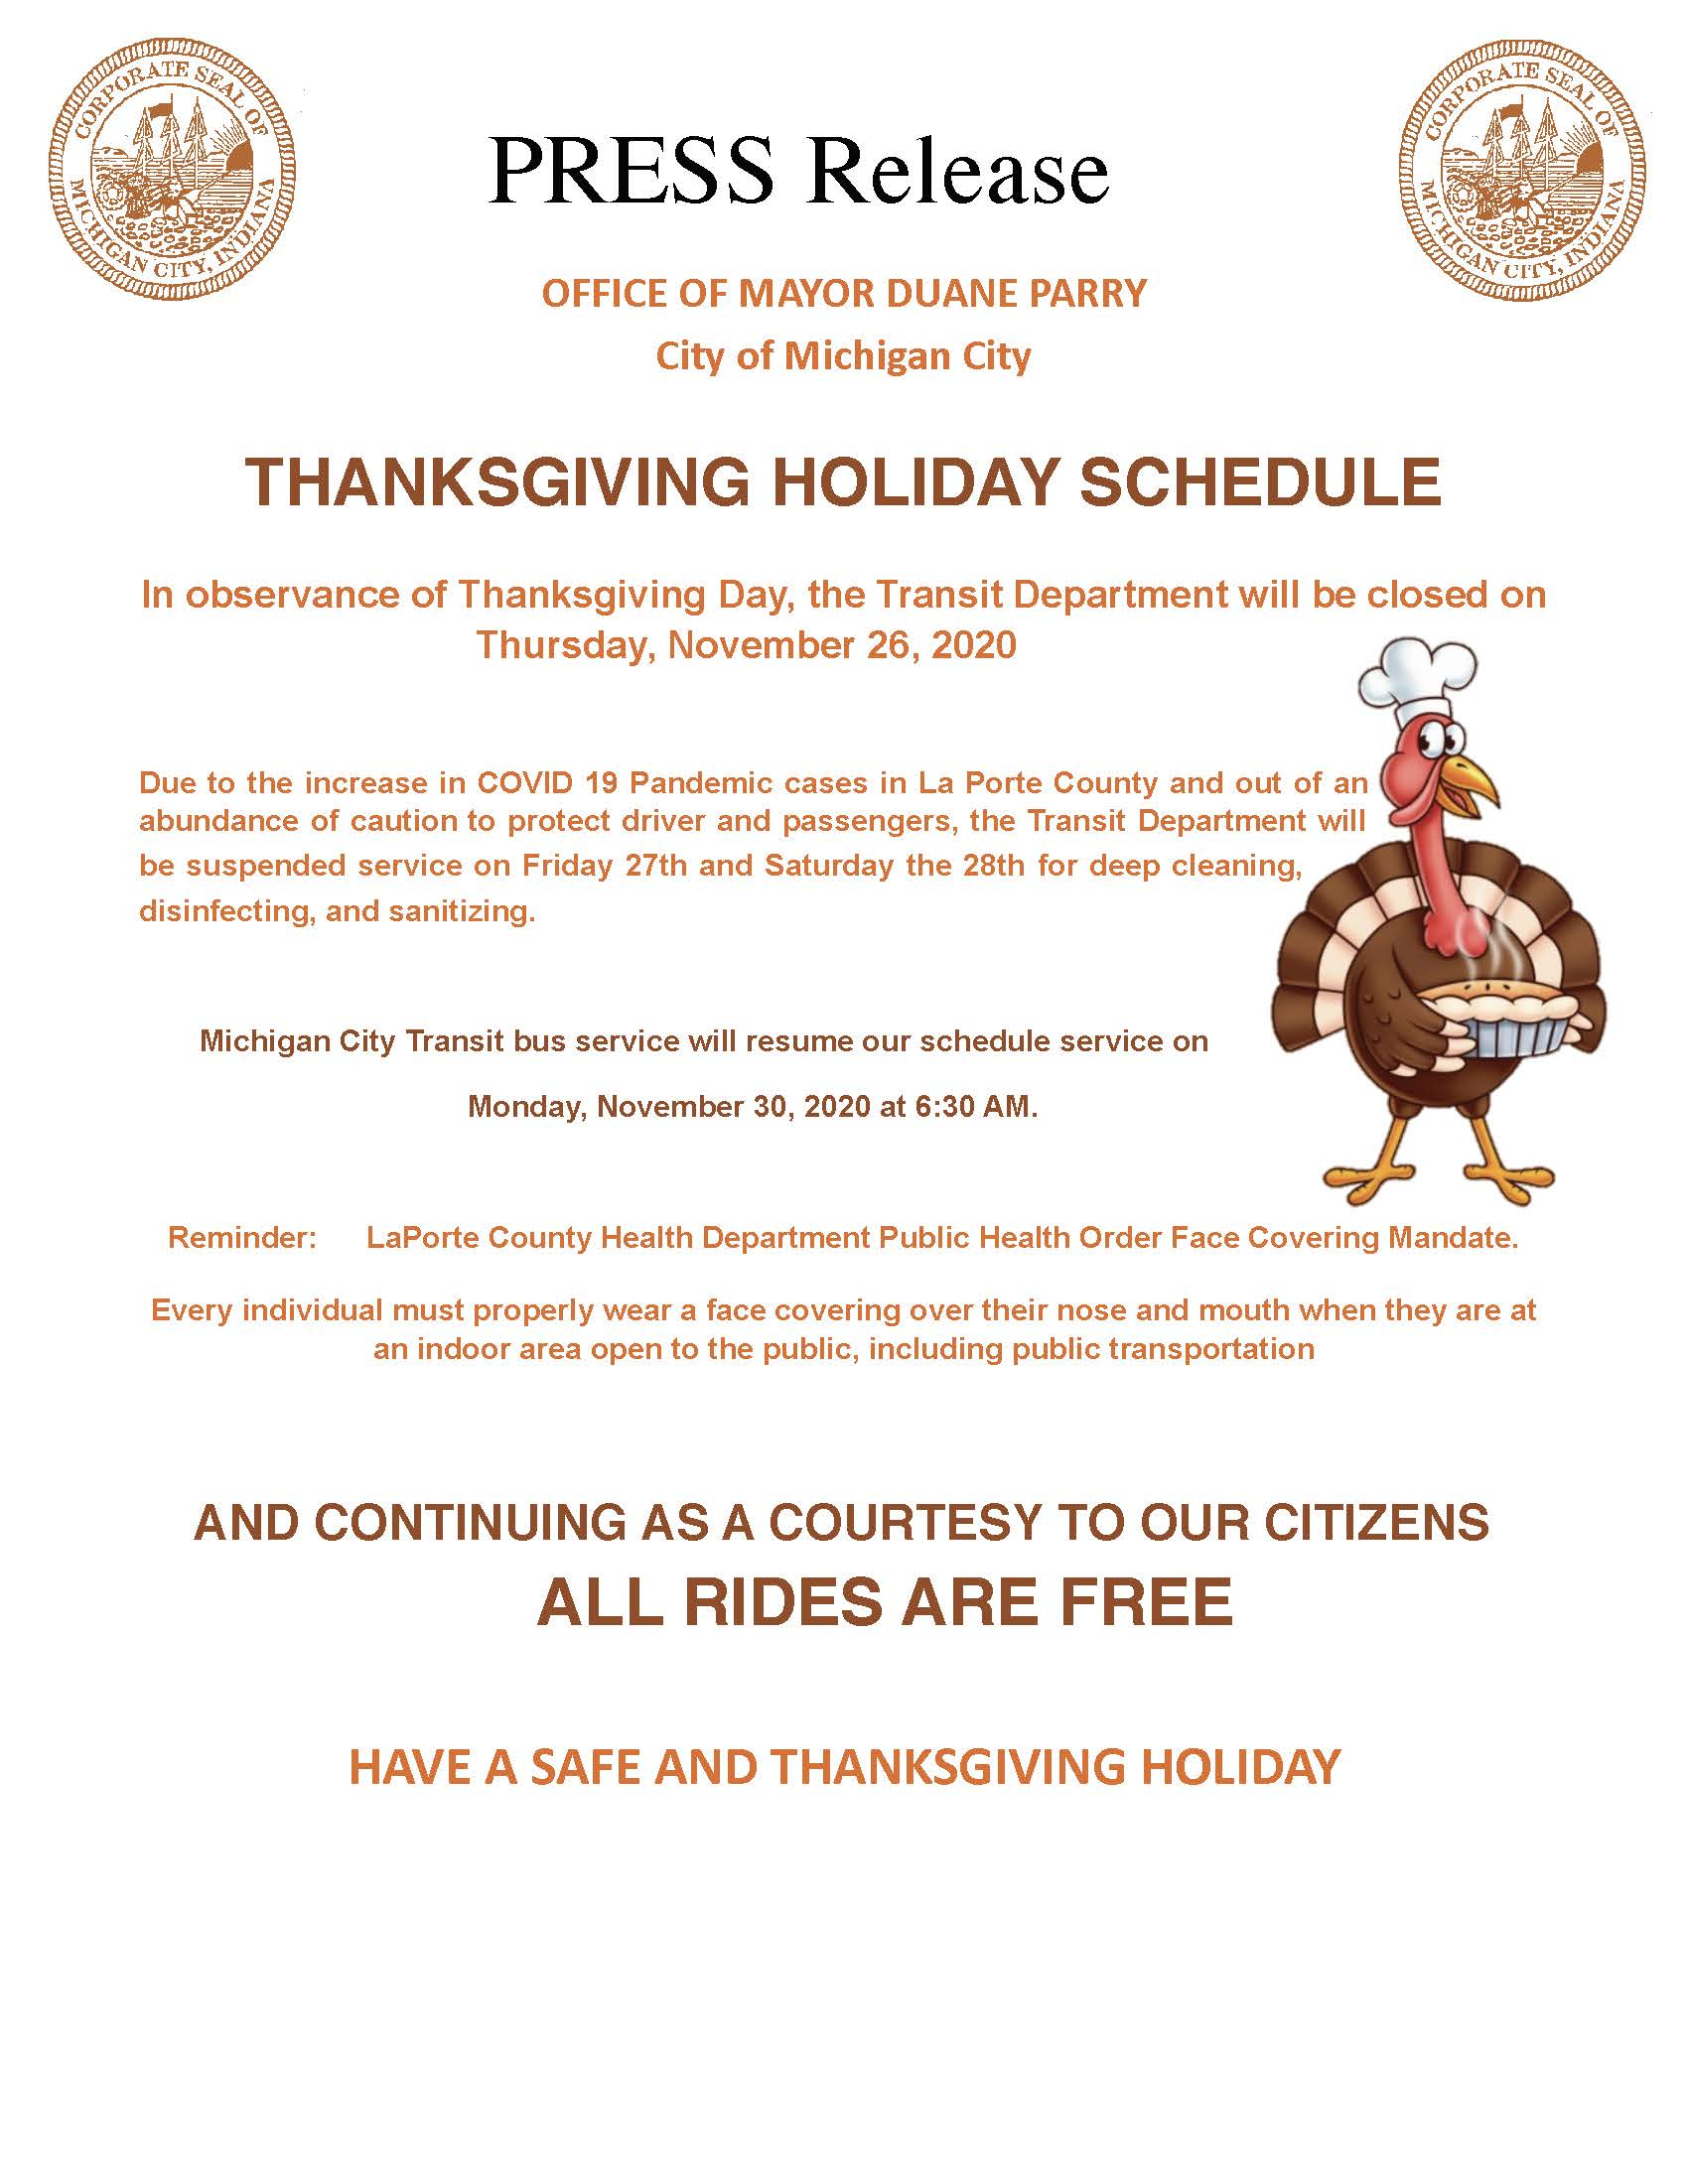 PRESS RELEASE FOR TRANSIT THANKSGIVING